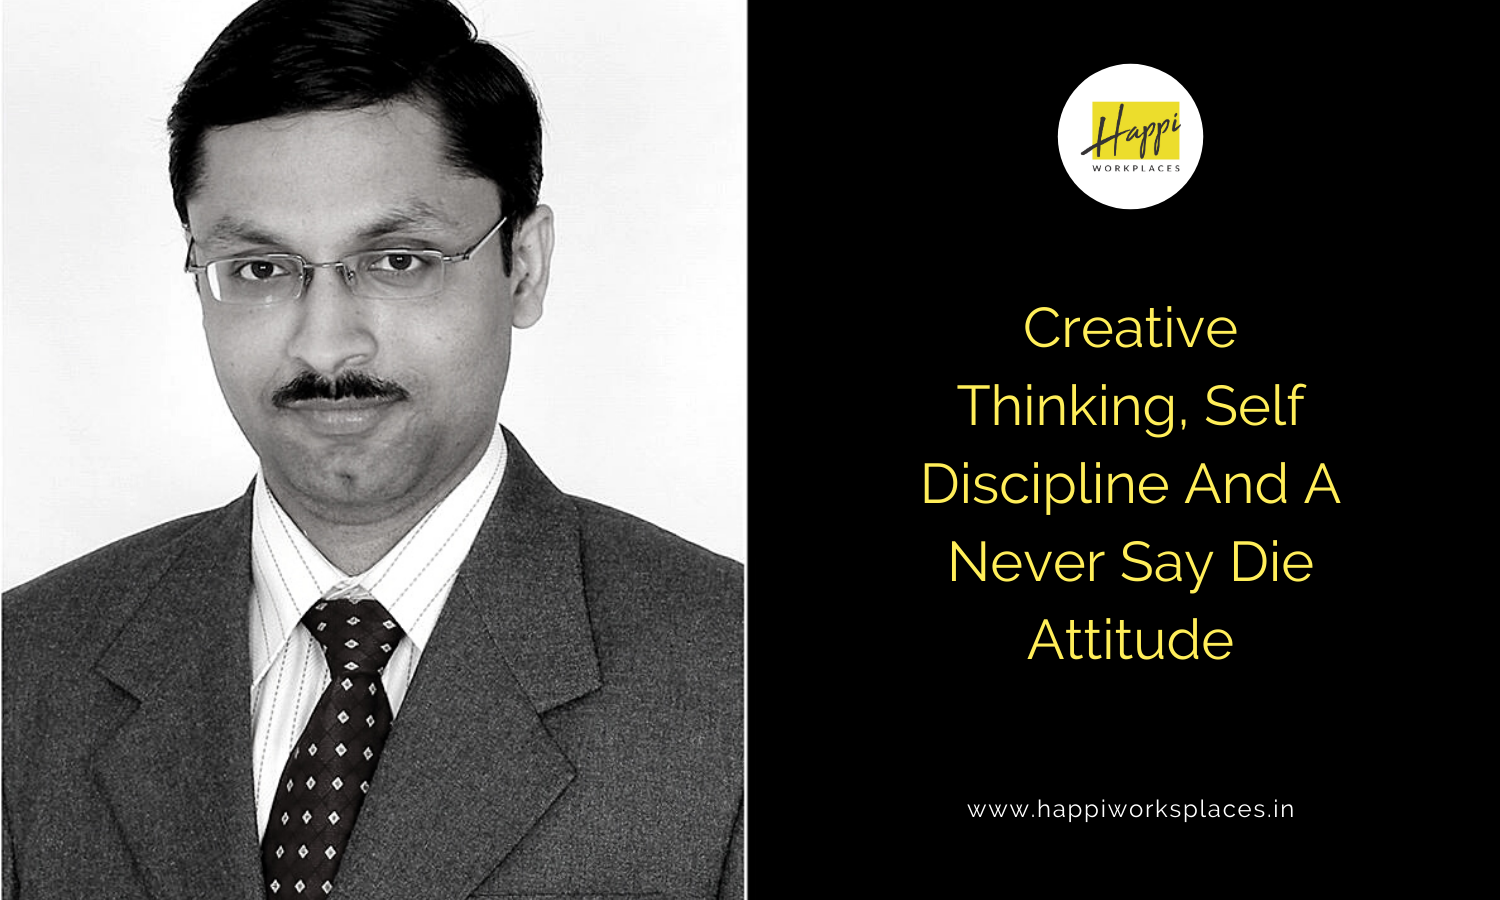 Creative Thinking, Self Discipline And A Never Say Die Attitude